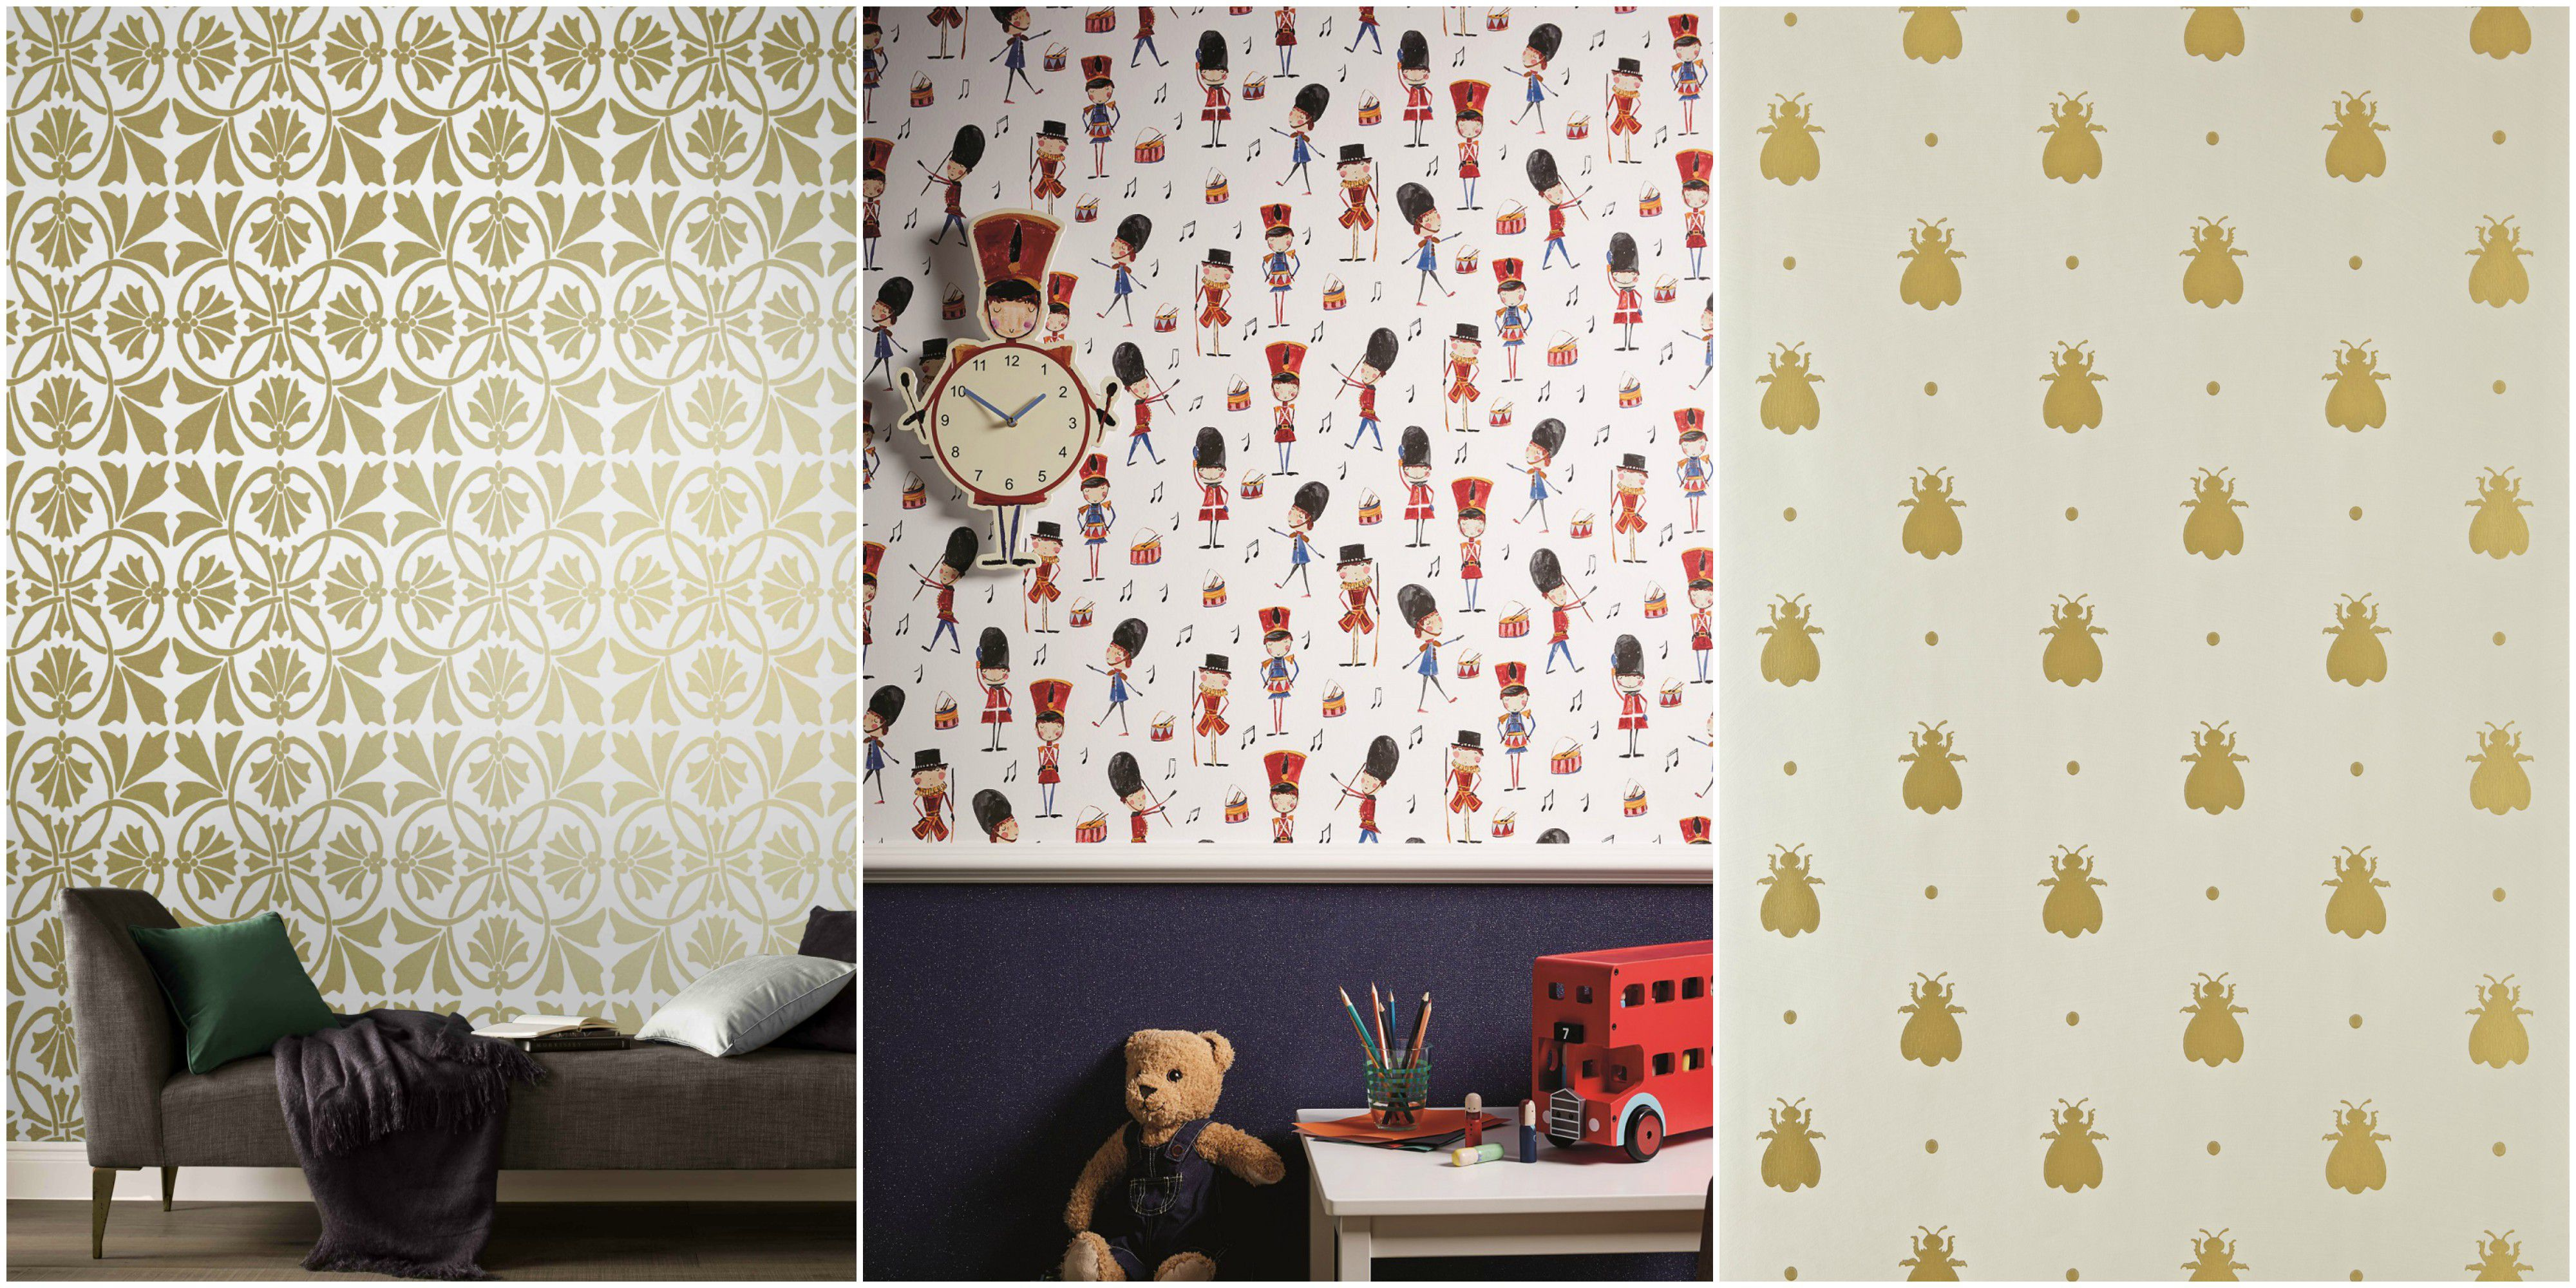 royal nursery wallpaper ideas QXIJGYX